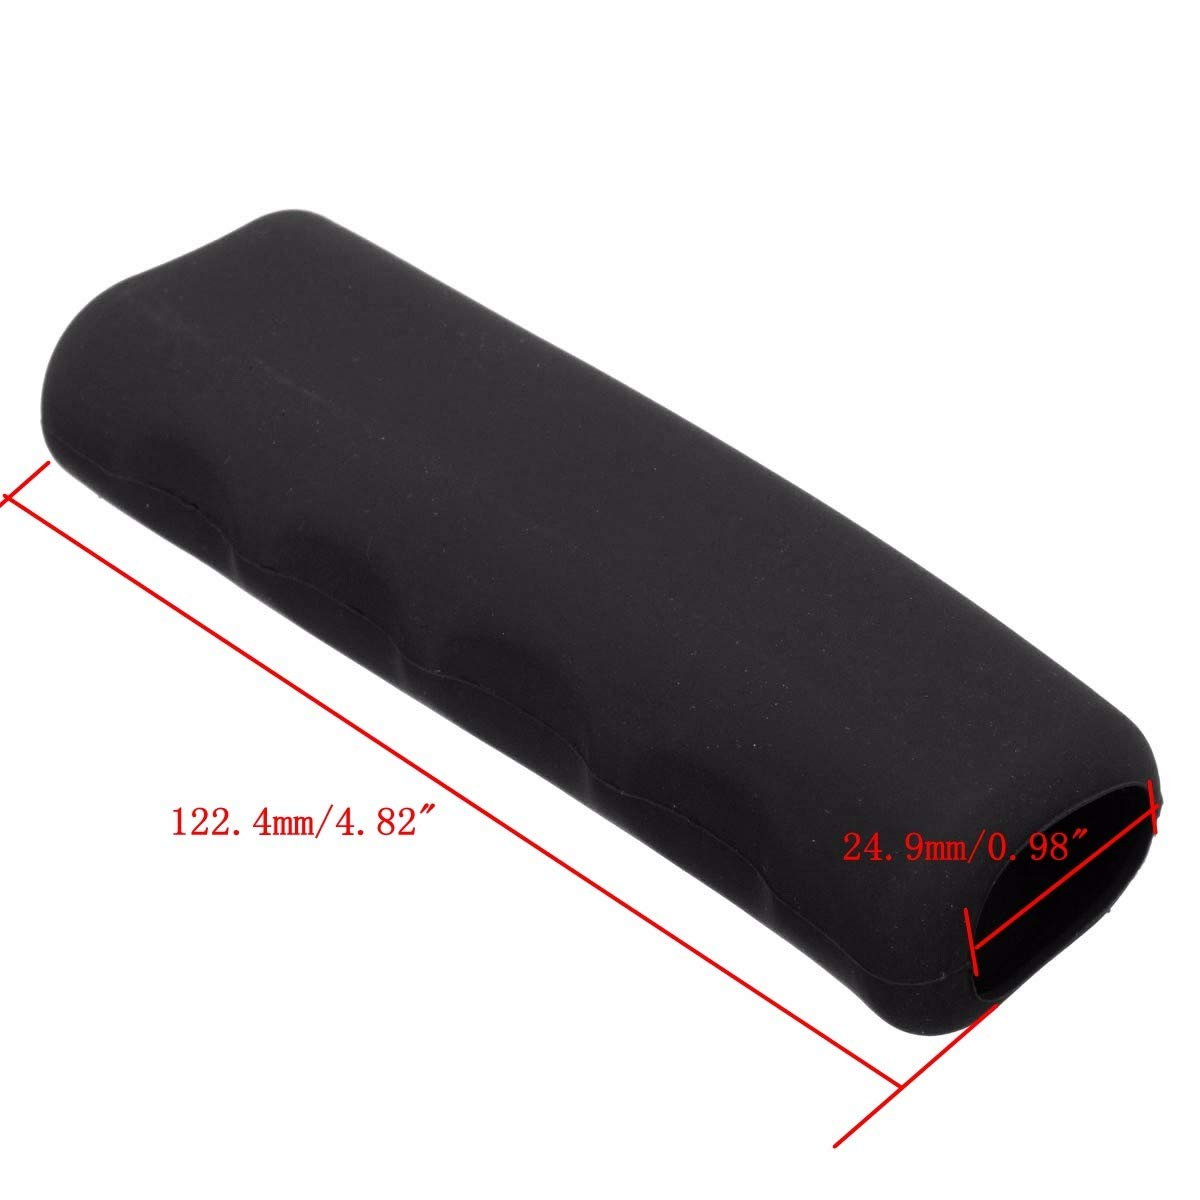 Iris-Shop Universal Car Silicone Parking Hand Brake Cover Handle Lever Case Sleeve Anti Slip Multicolored